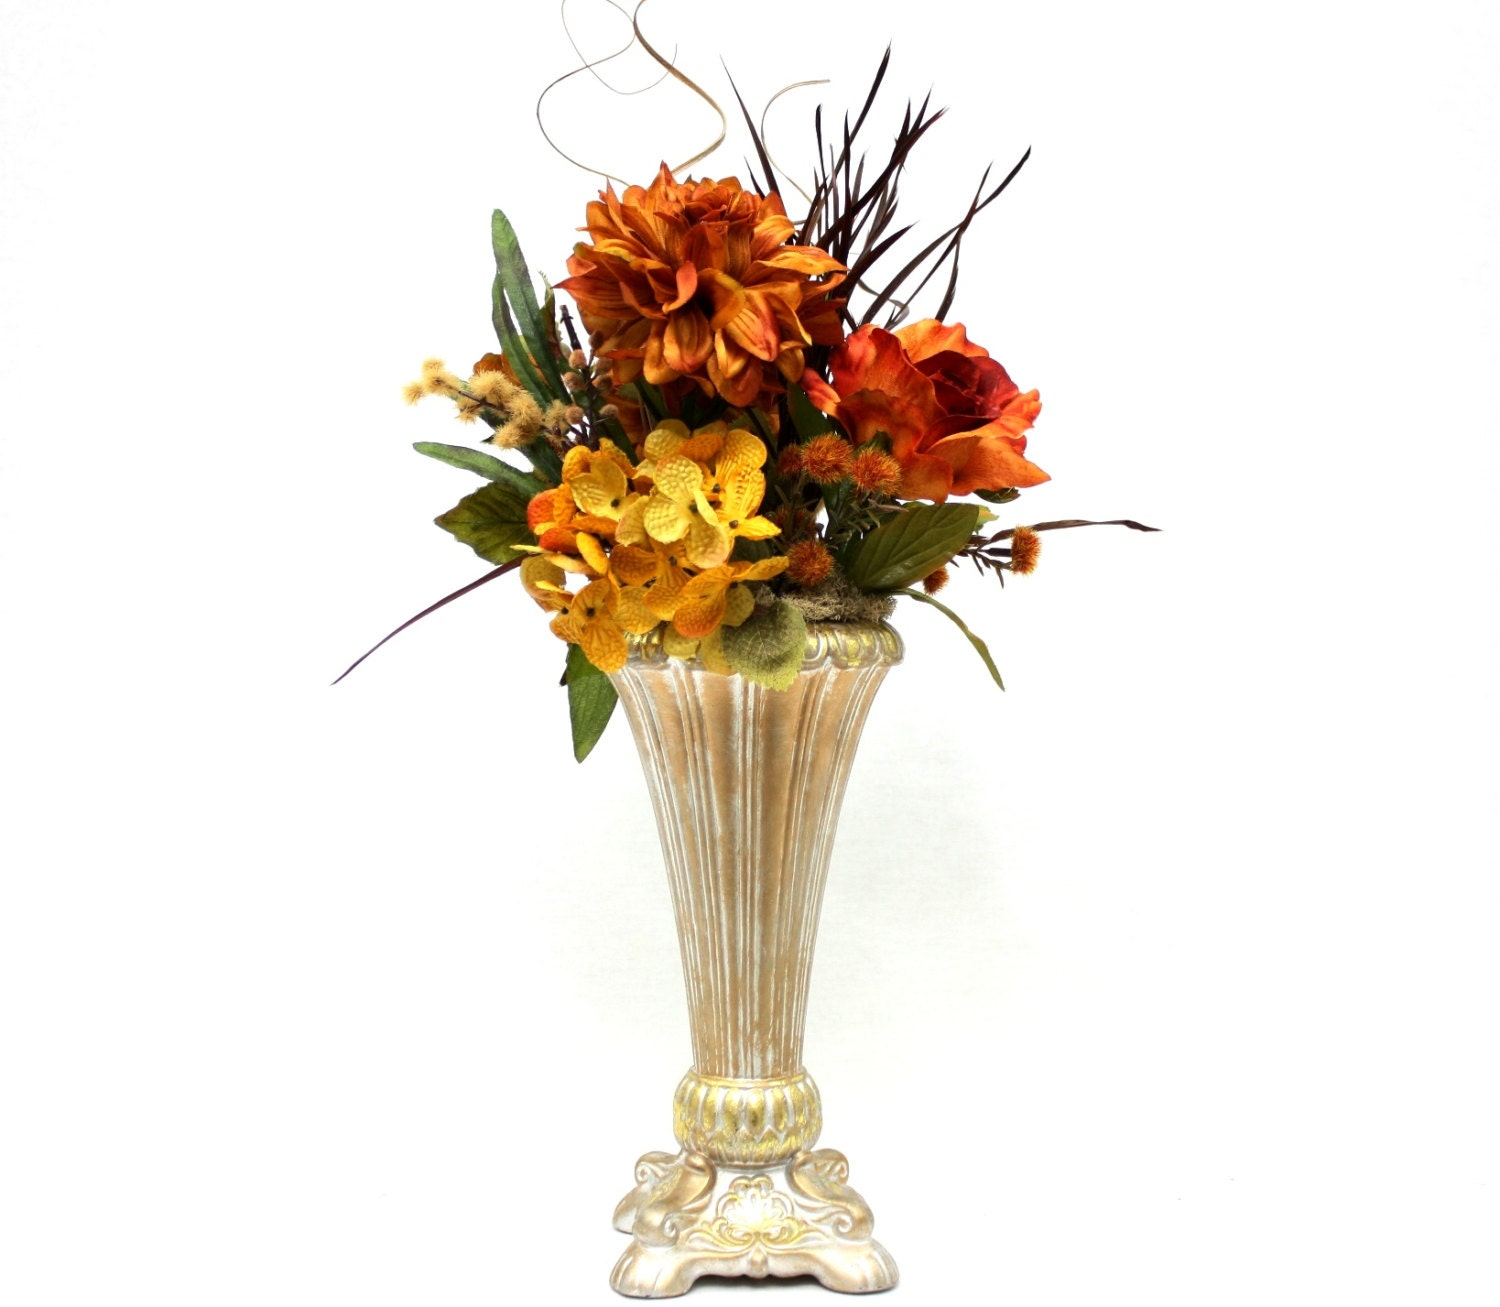 Flower arrangements for dining table dining table for Dining table flower arrangements